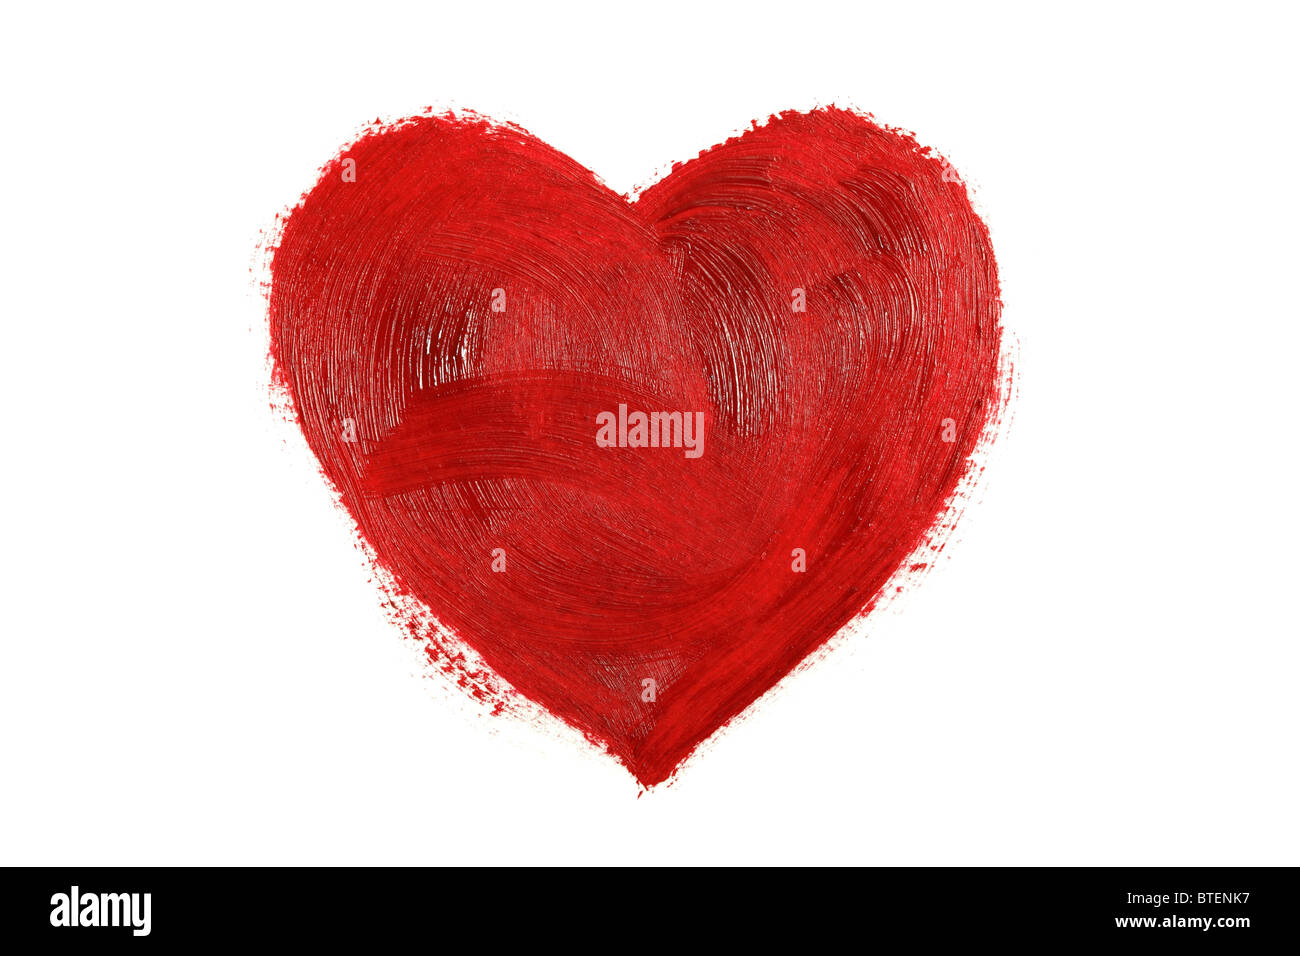 Painted red heart - Stock Image